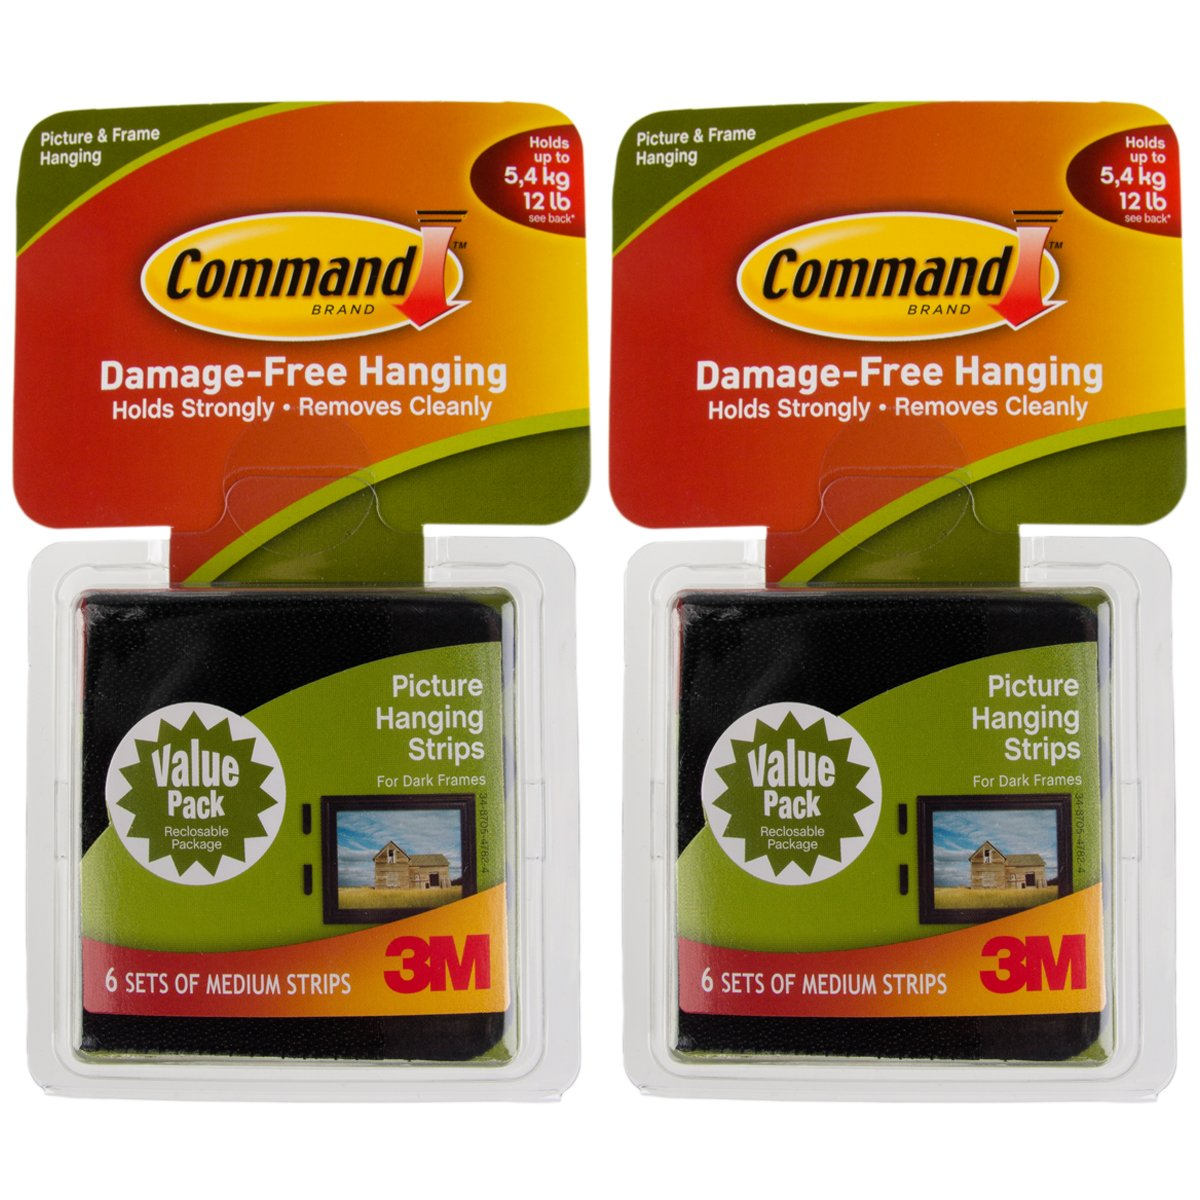 Command 3M 12ct Pack Picture & Frame Hanging Strip Sets Medium Size Black Damage-Free